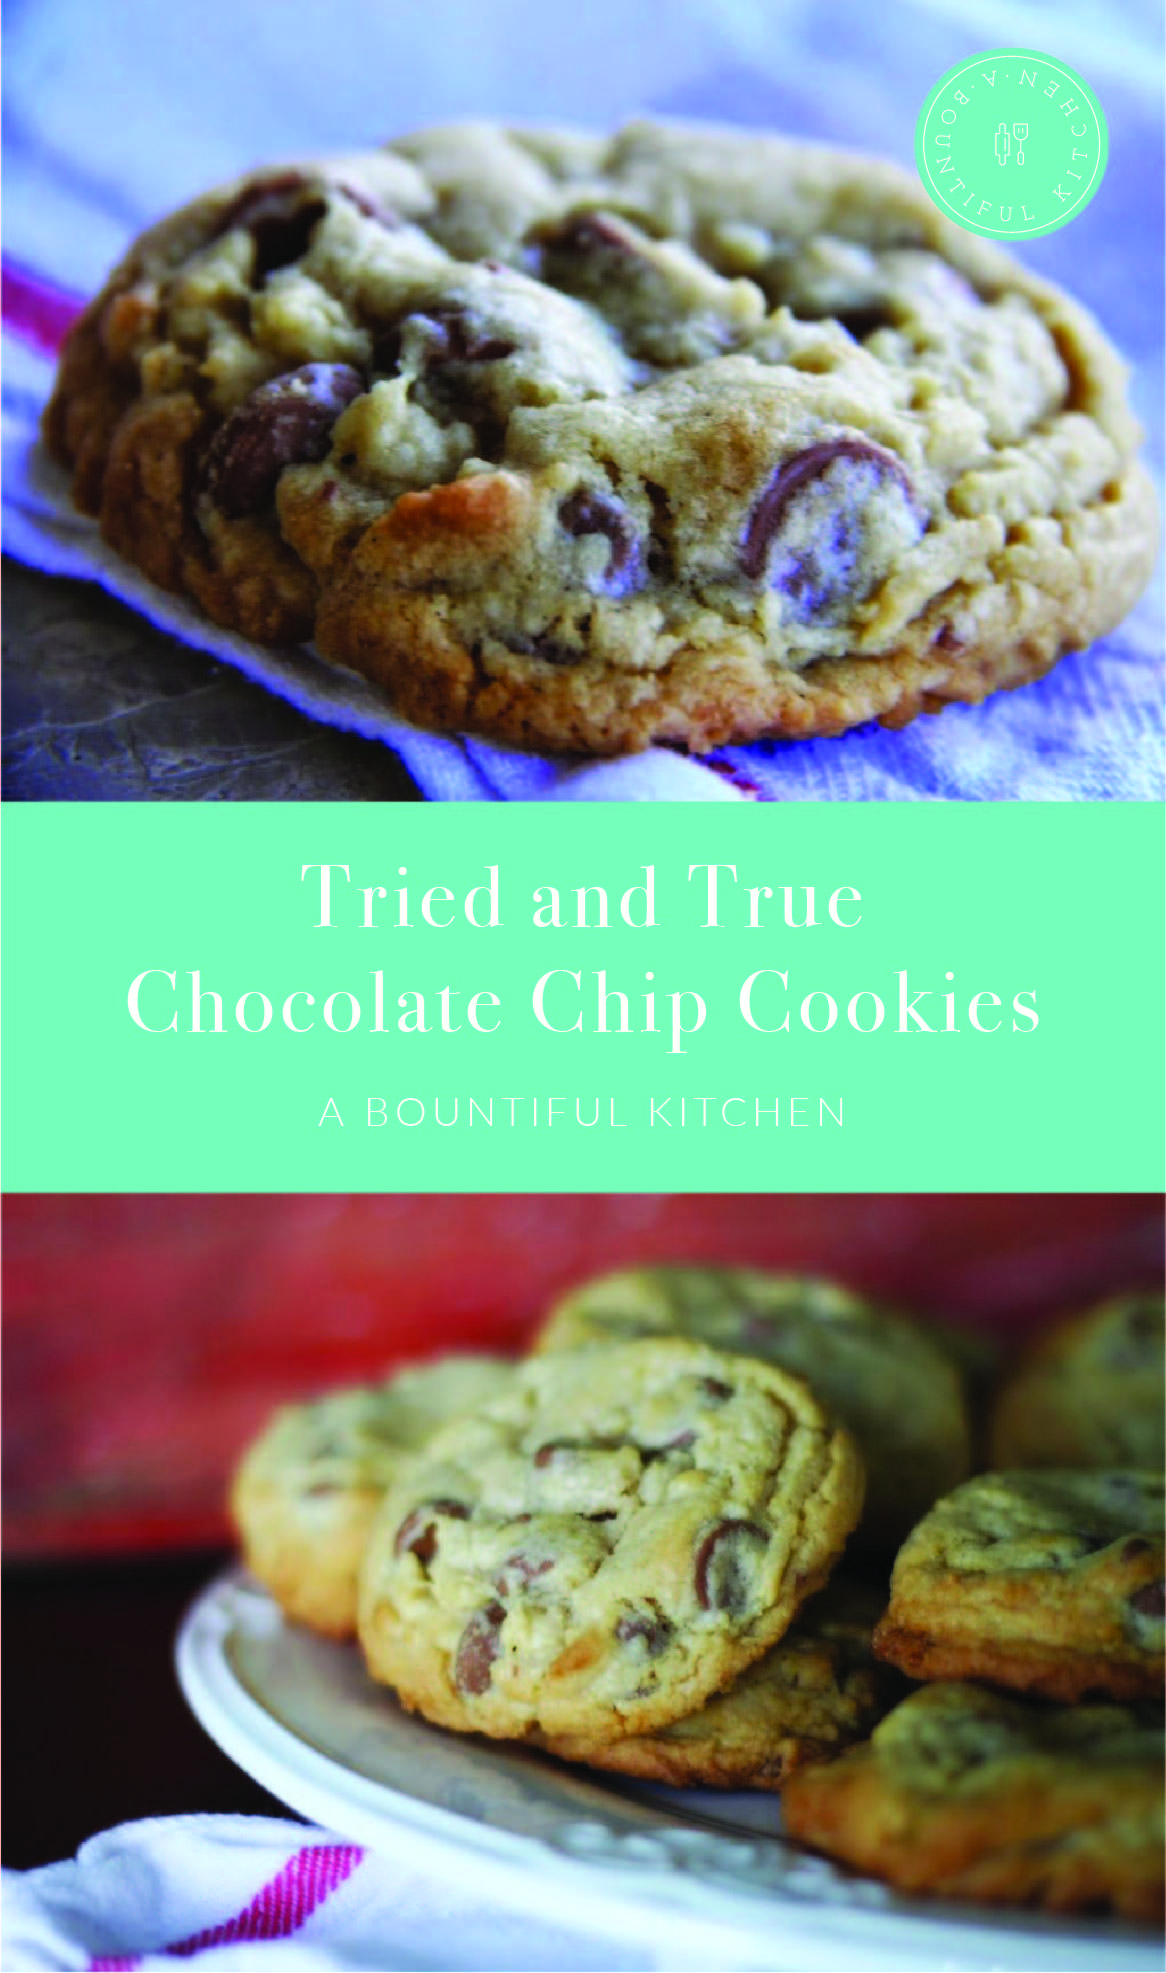 Tried And True Chocolate Chip Cookies Recipe Chocolate Chip Cookies Chocolate Chip Cookies Recipes Chocolate Chip